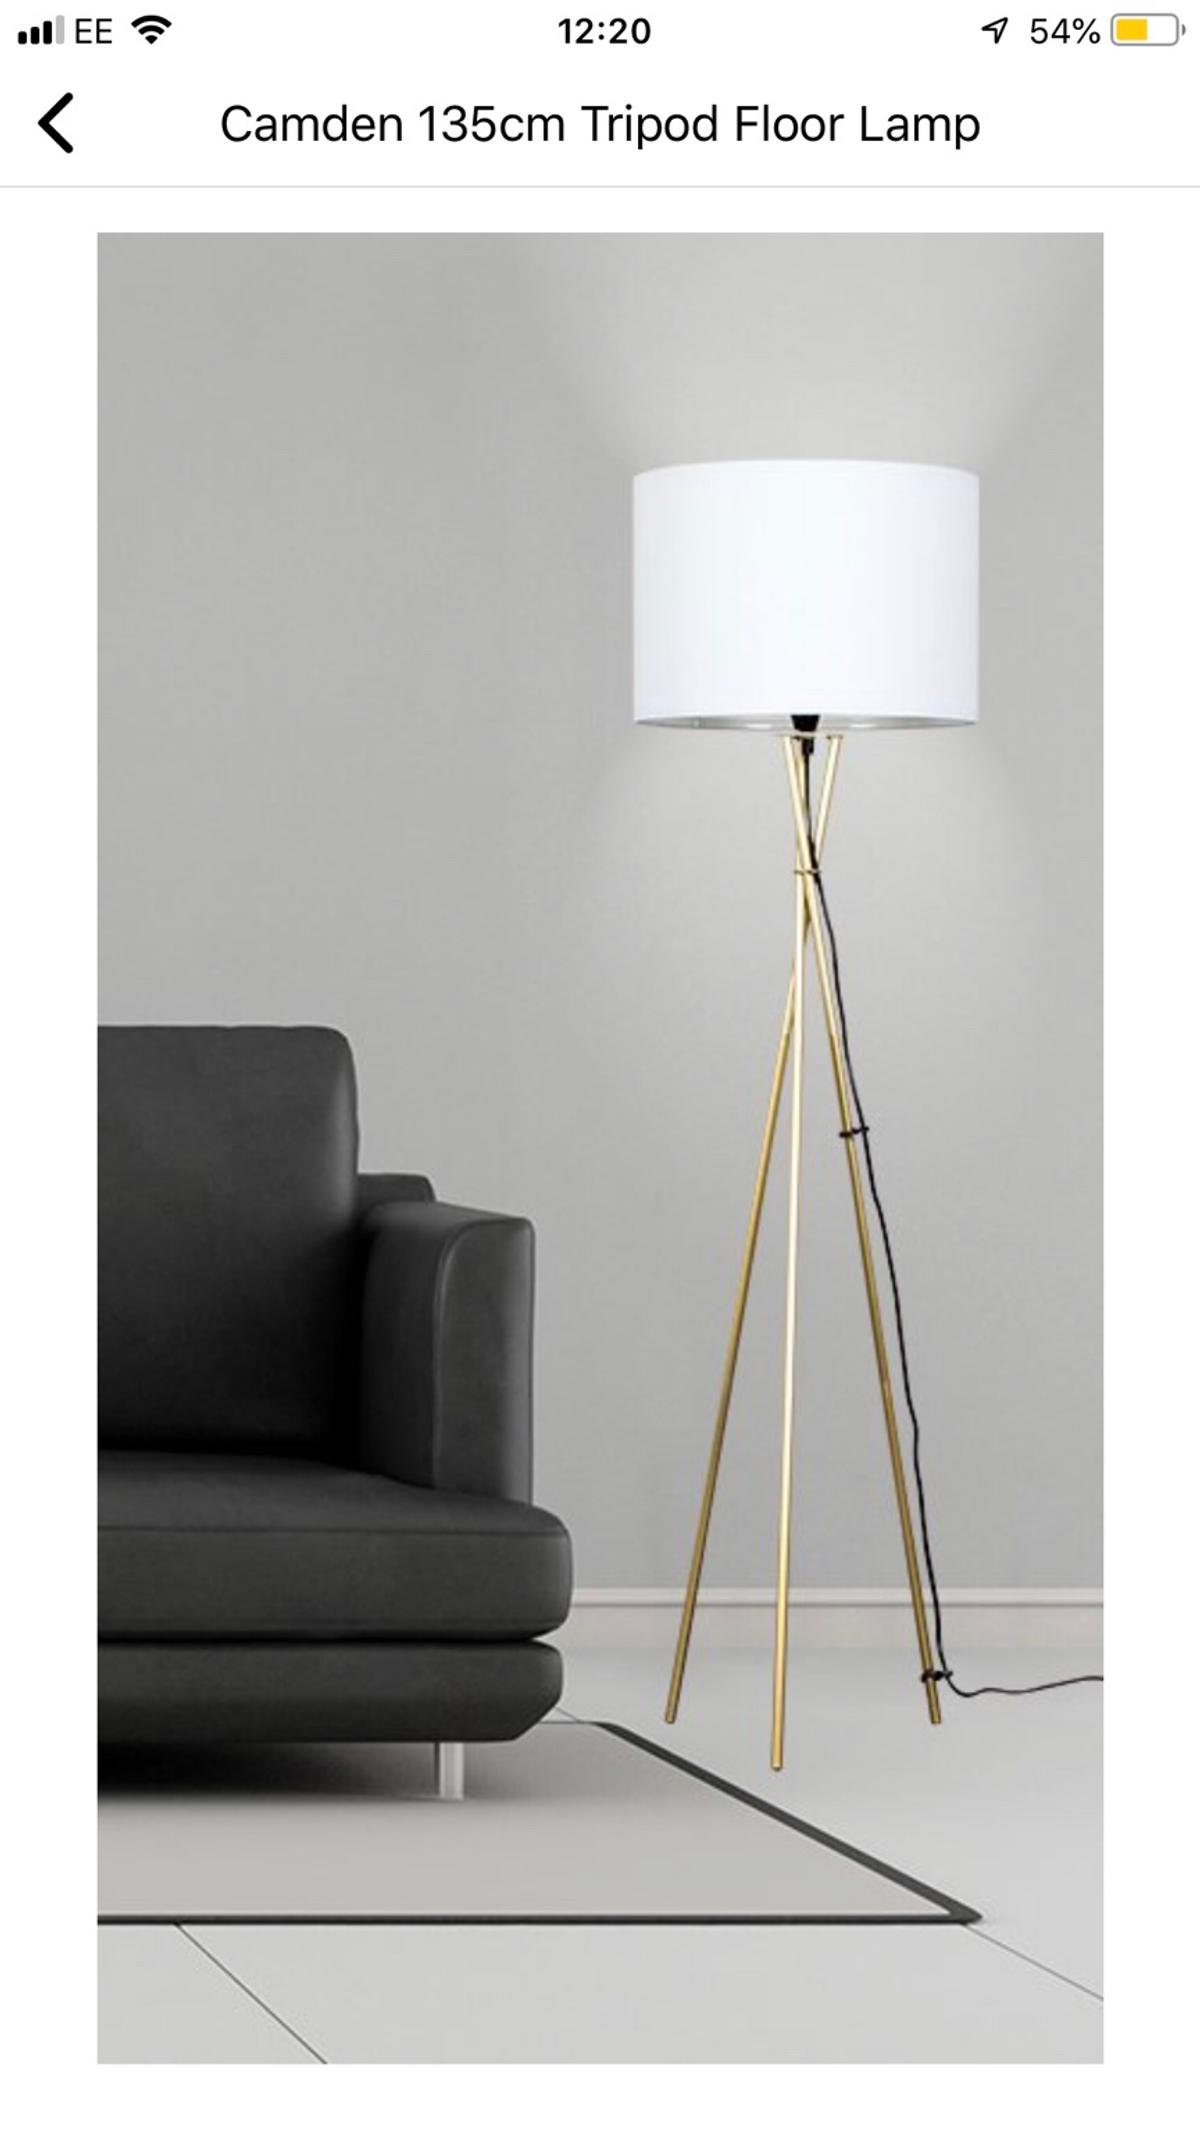 Picture of: Camden Tripod Floor Lamp From Wayfair In N17 Haringey For 25 00 For Sale Shpock